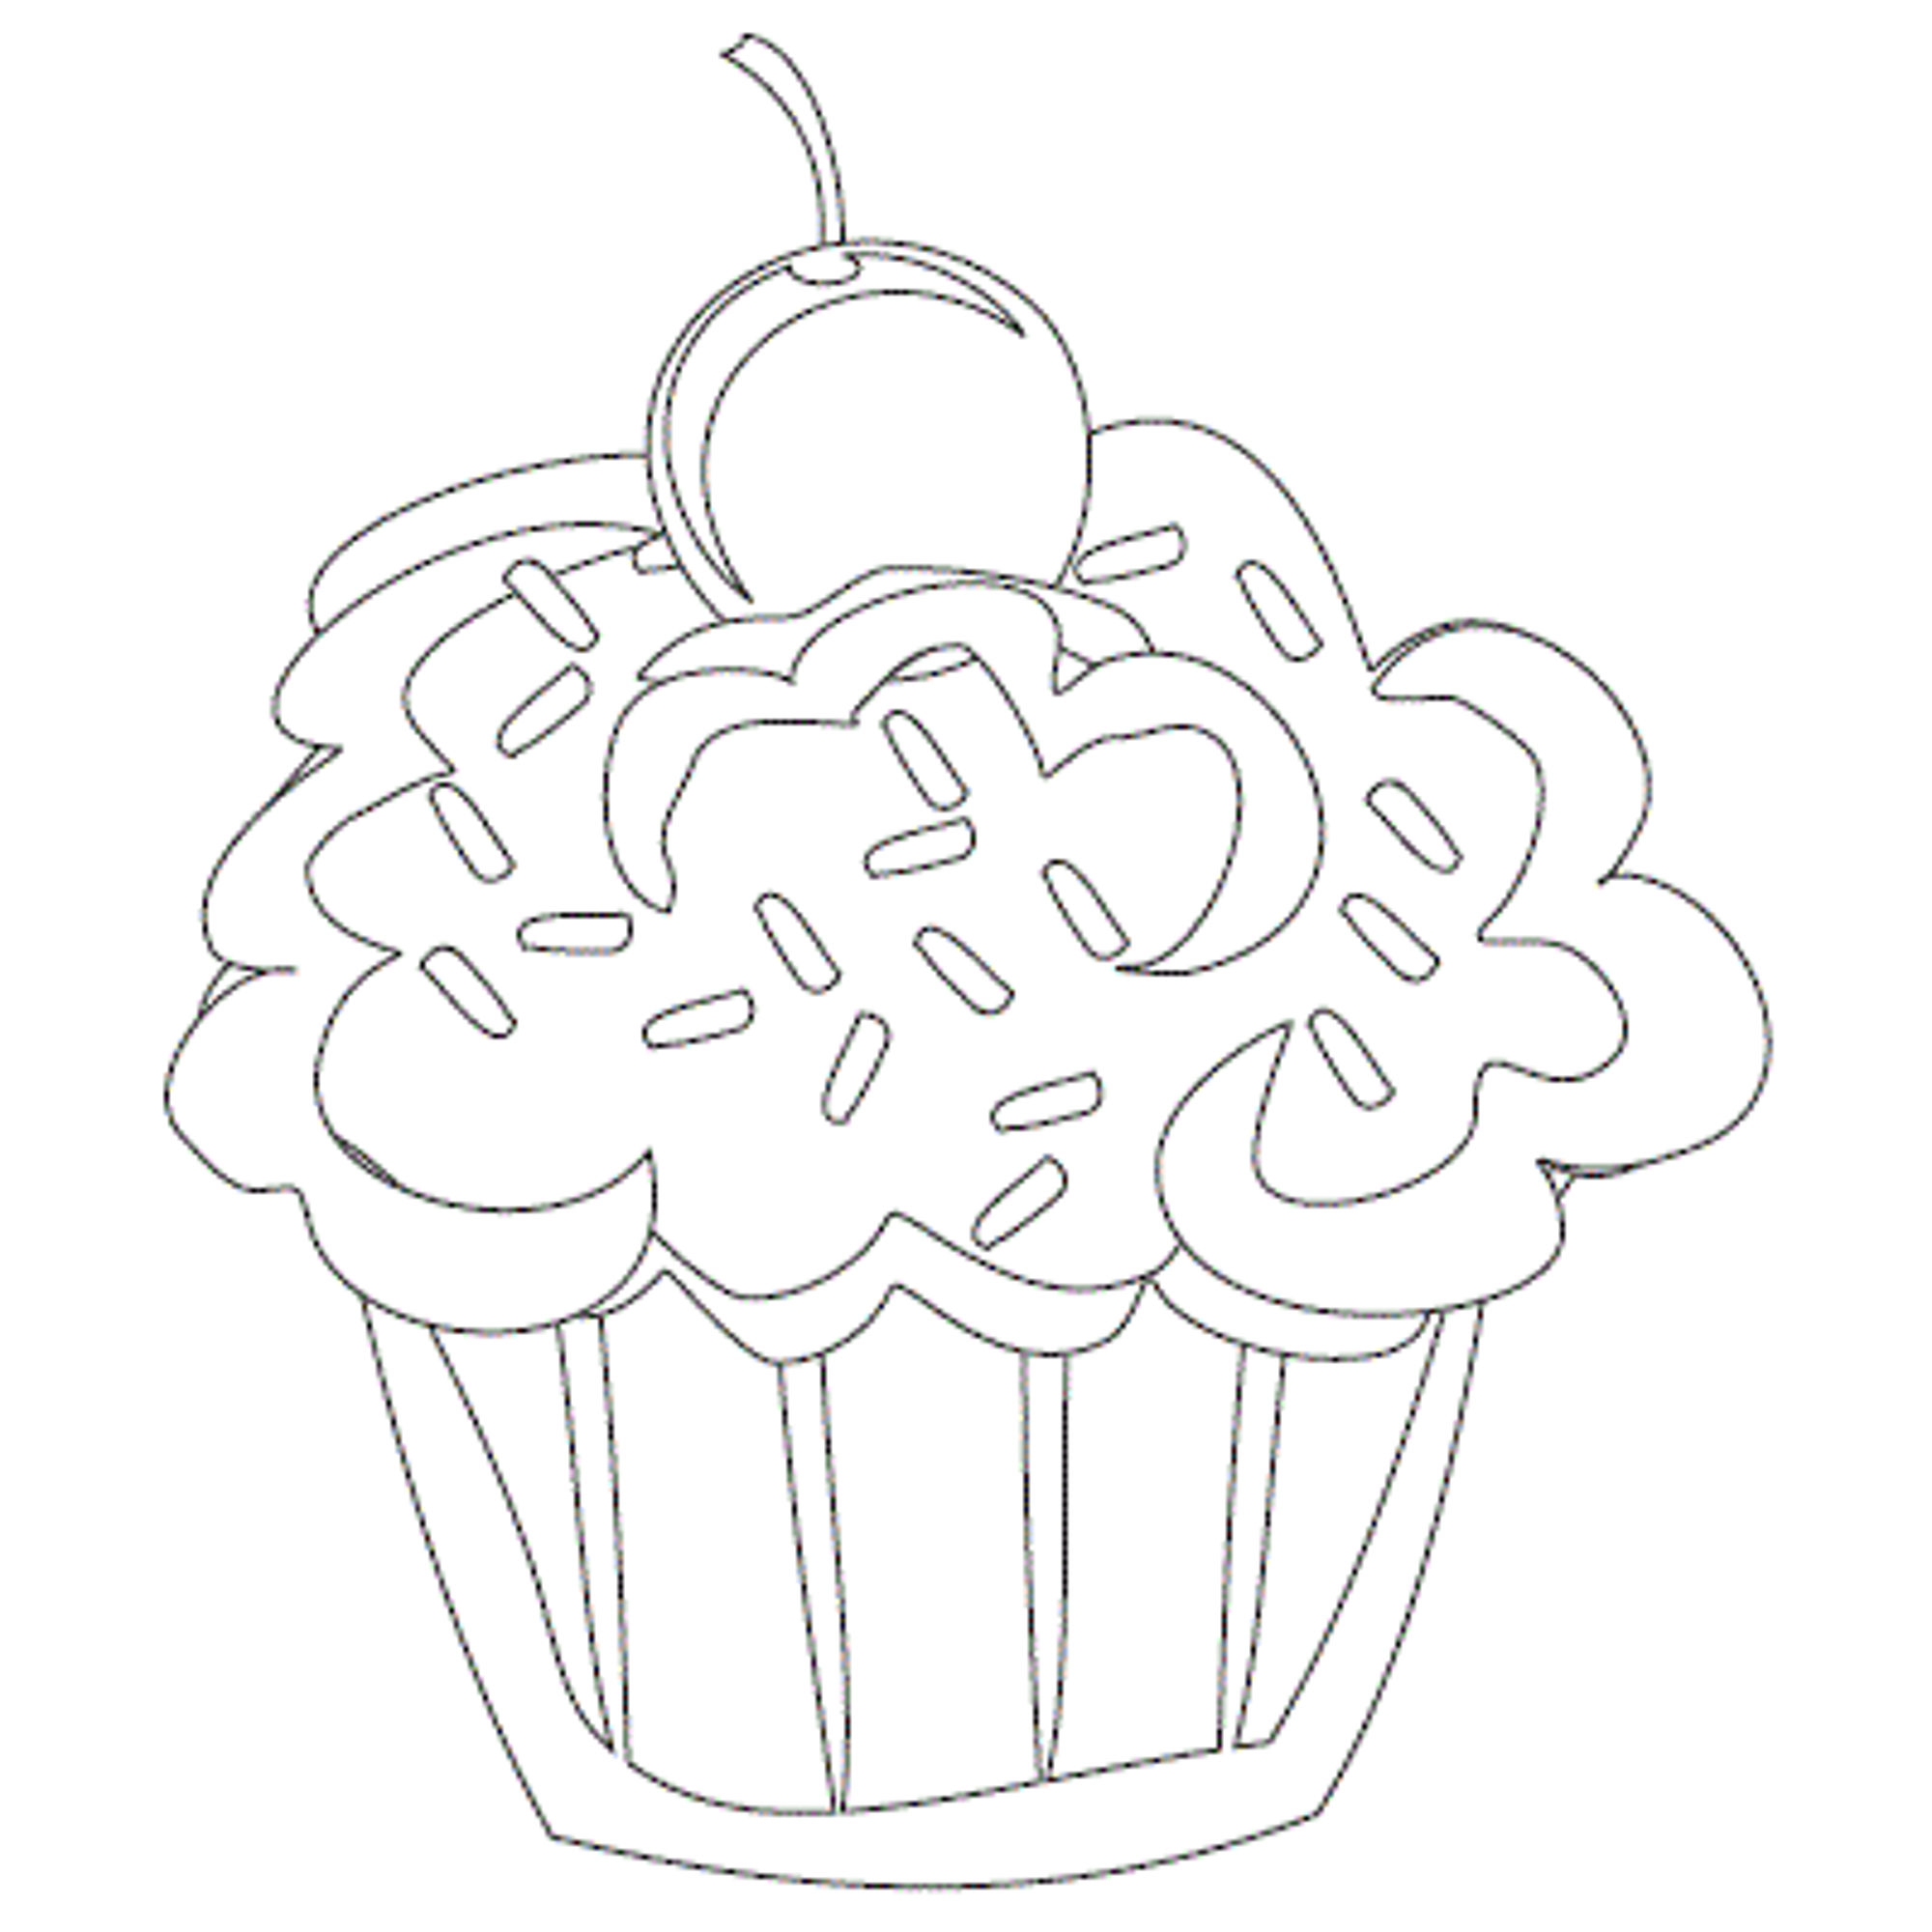 Cupcake Drawing Designs At Getdrawings